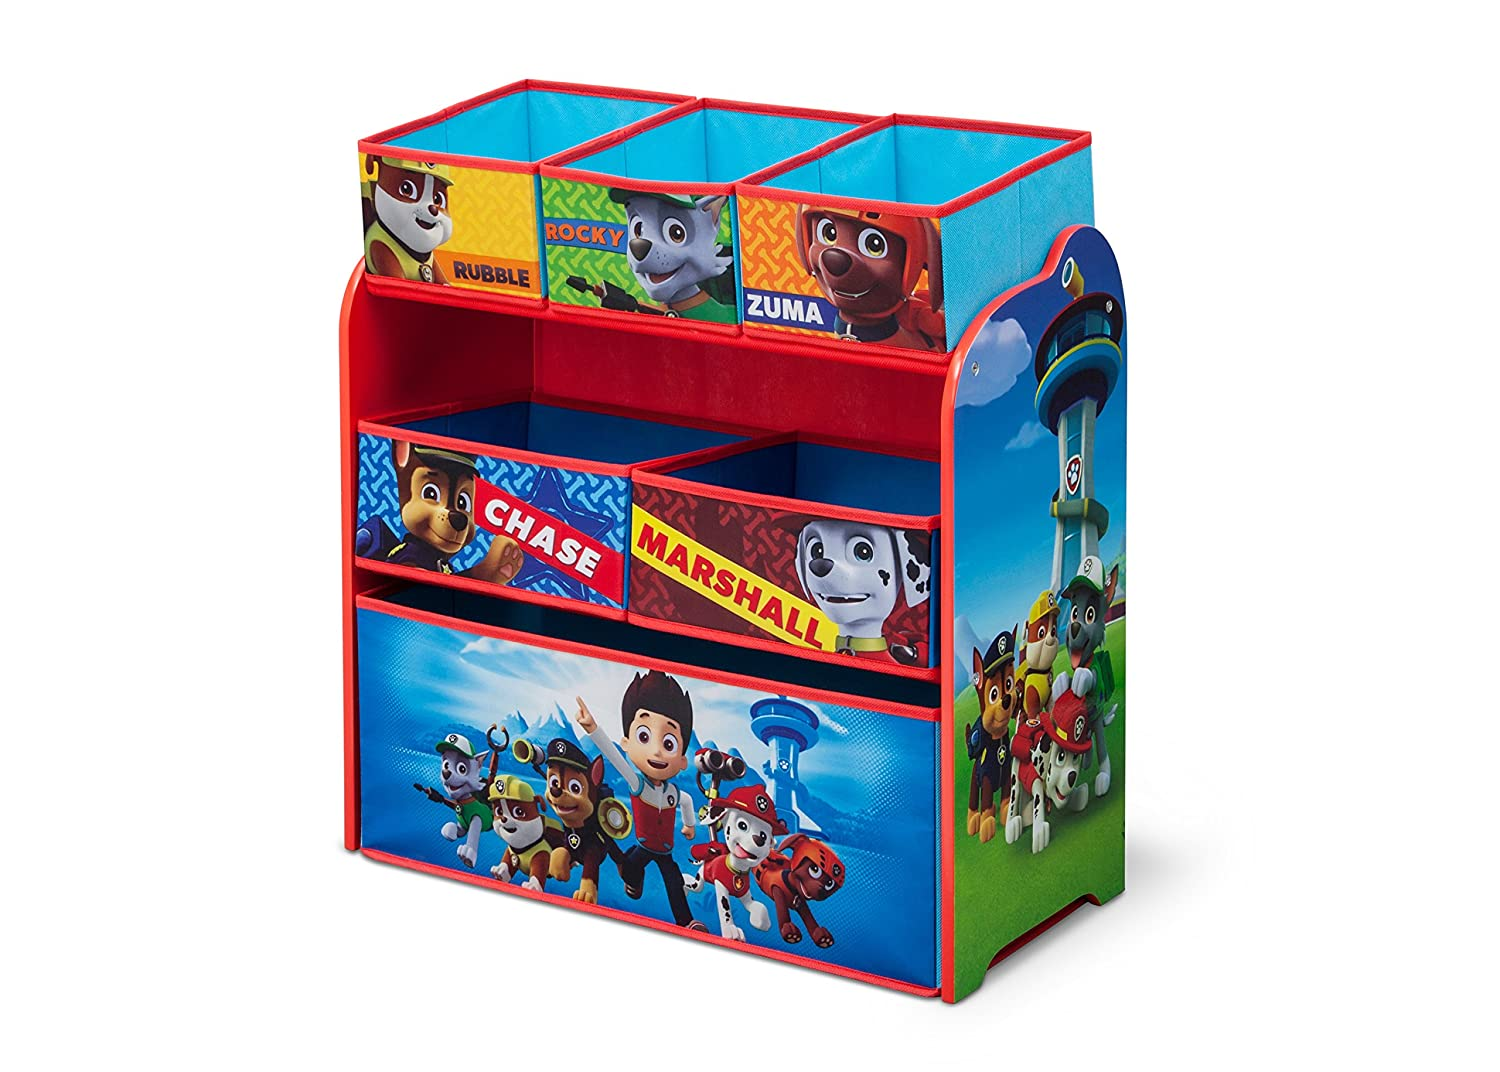 Paw Patrol Toy Organizer Bin Cubby Kids Child Storage Box: Organizer Playroom Chest Toy Box Multi Bin Storage PAW